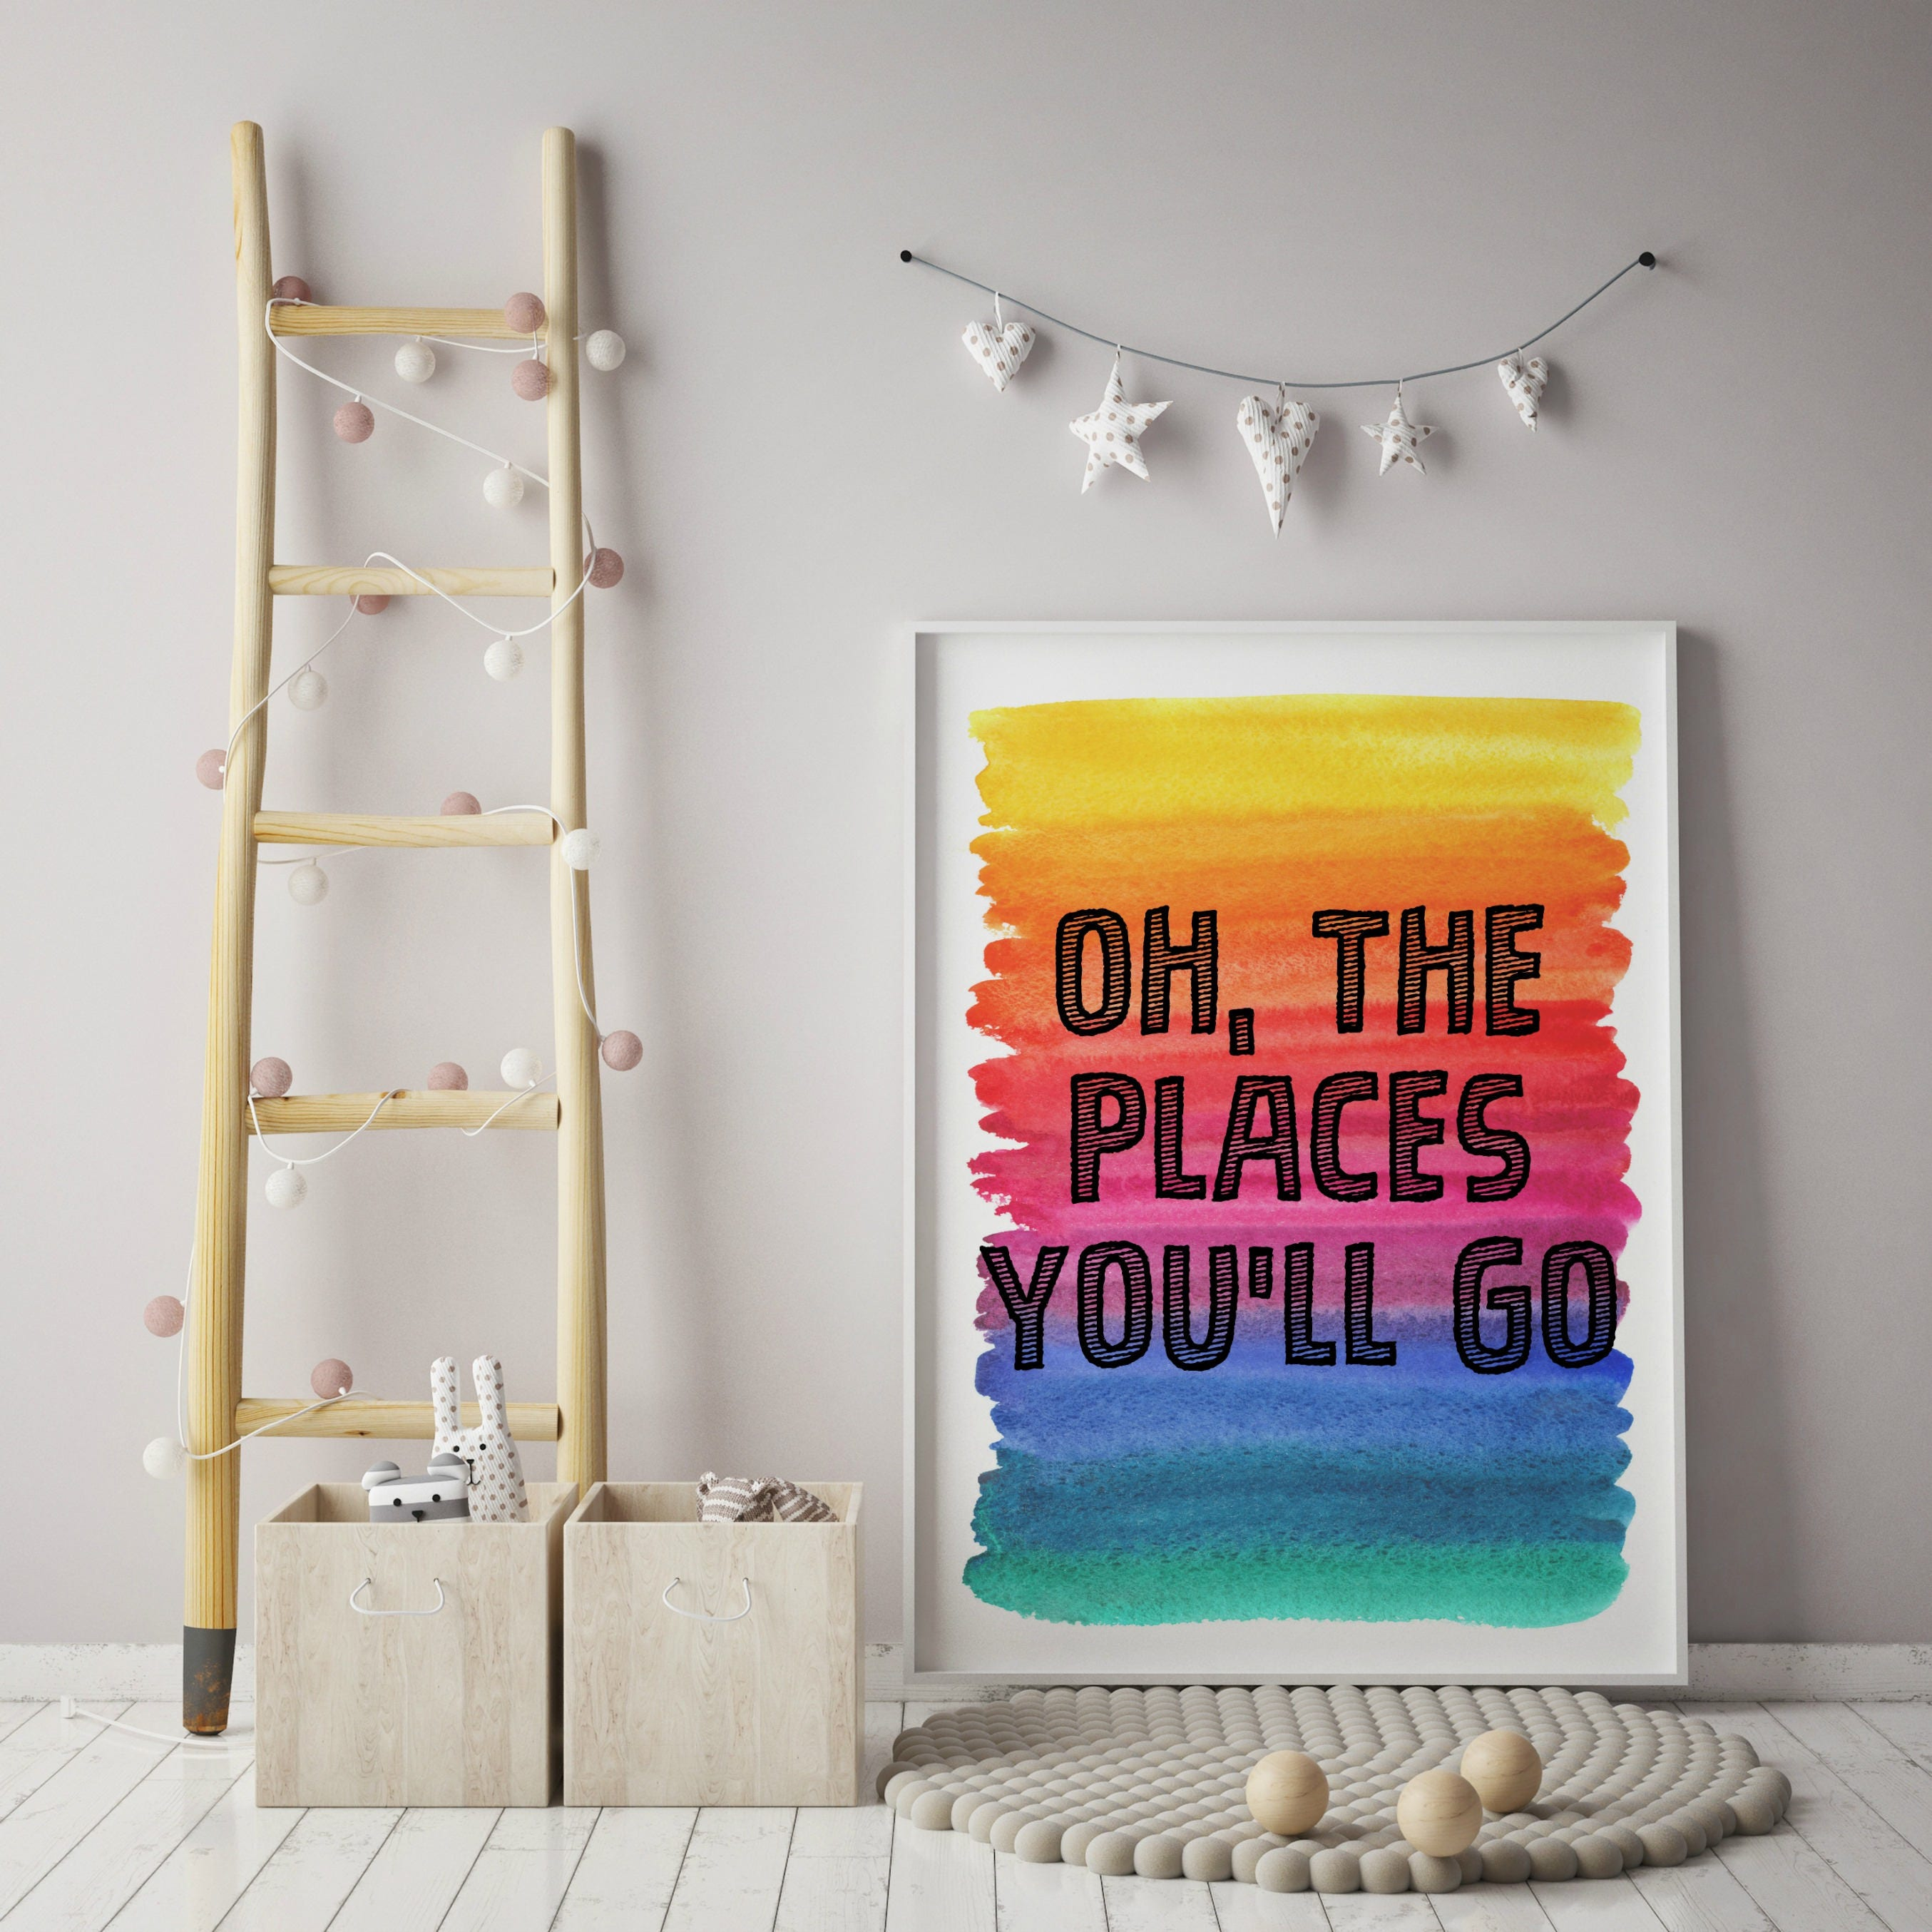 Dr Seuss Wall Decor oh, the places you'll go! dr. seuss wall art, dr. seuss art